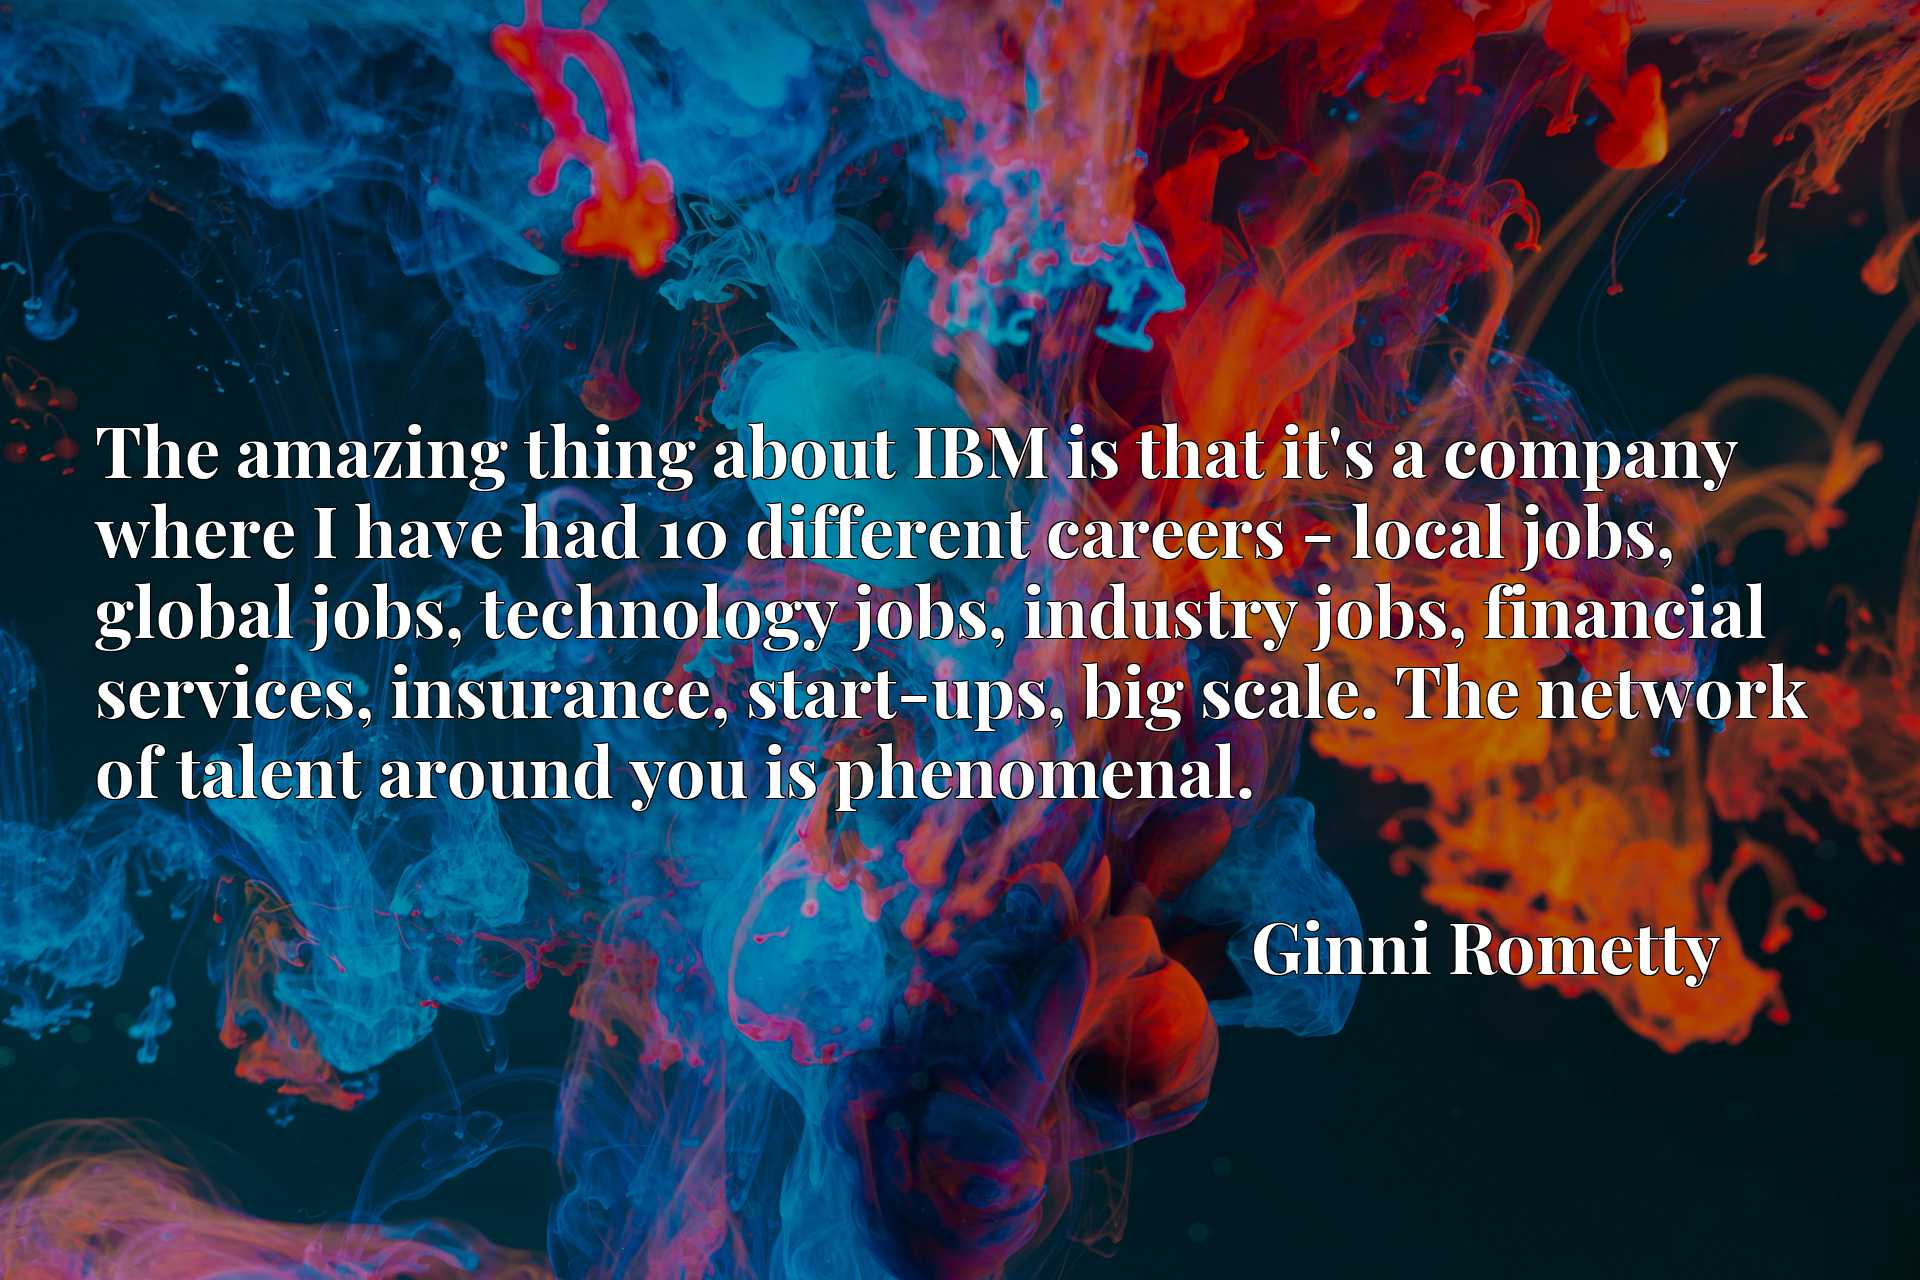 The amazing thing about IBM is that it's a company where I have had 10 different careers - local jobs, global jobs, technology jobs, industry jobs, financial services, insurance, start-ups, big scale. The network of talent around you is phenomenal.